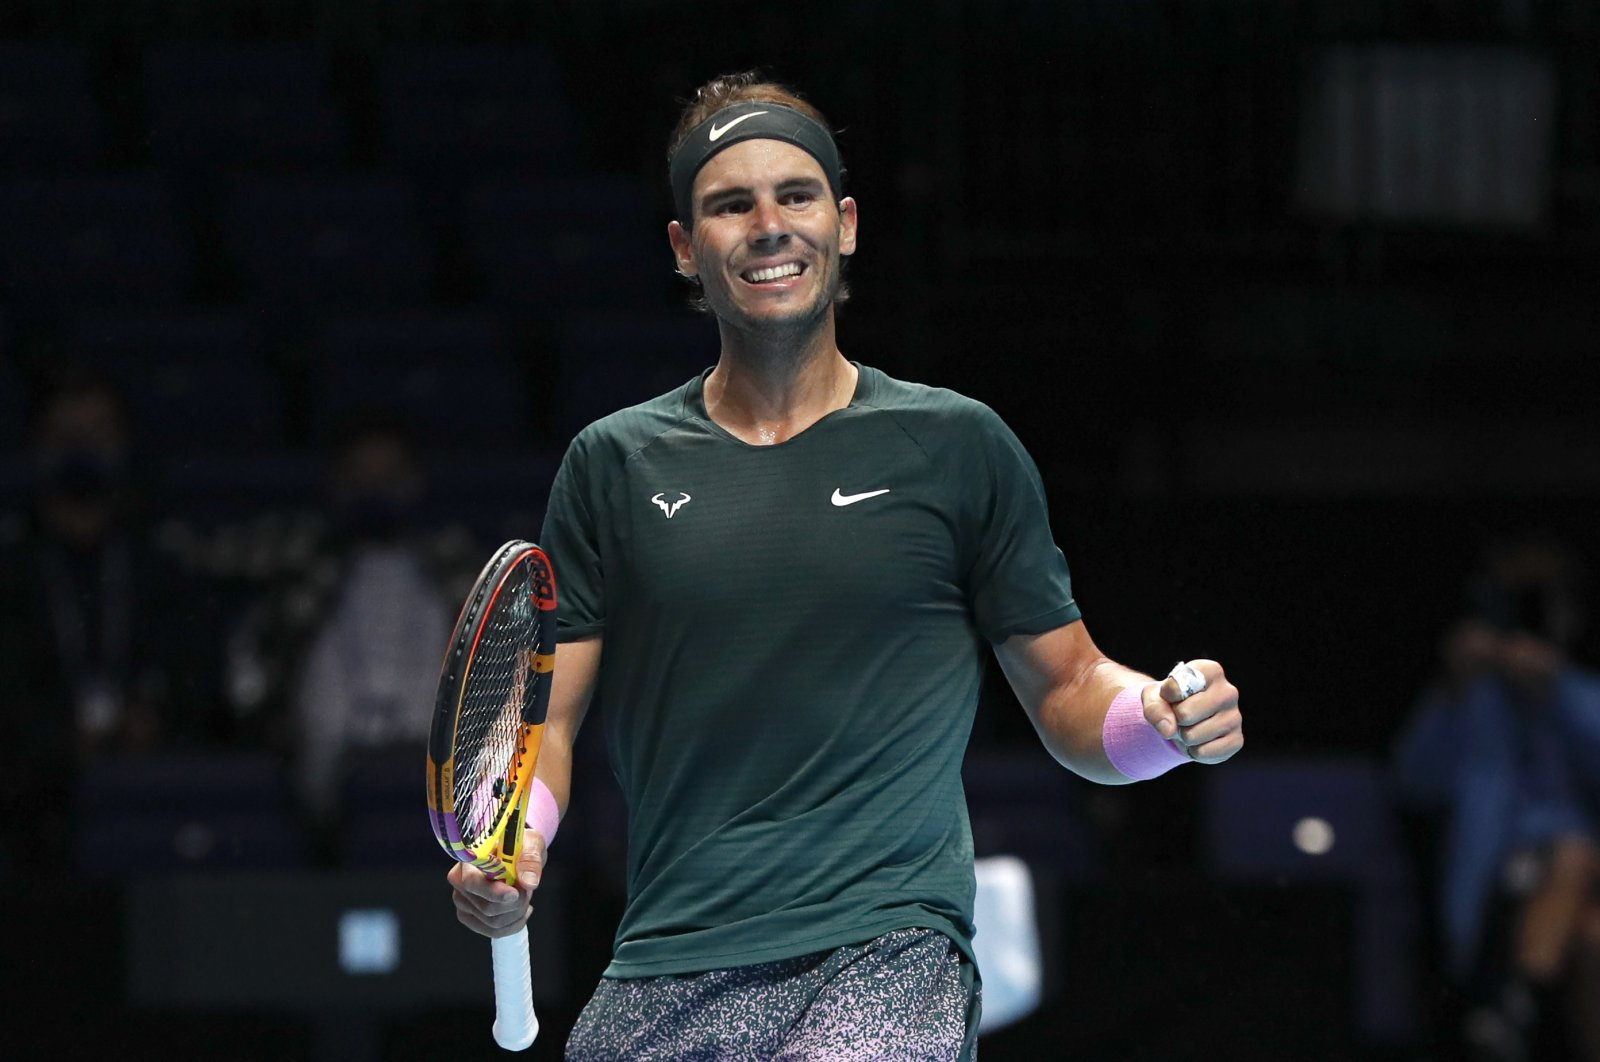 Rafael Nadal of Spain celebrates defeating Stefanos Tsitsipas of Greece at the ATP World Finals tennis tournament at the O2 arena in London, Thursday, Nov. 19, 2020. (AP Photo)